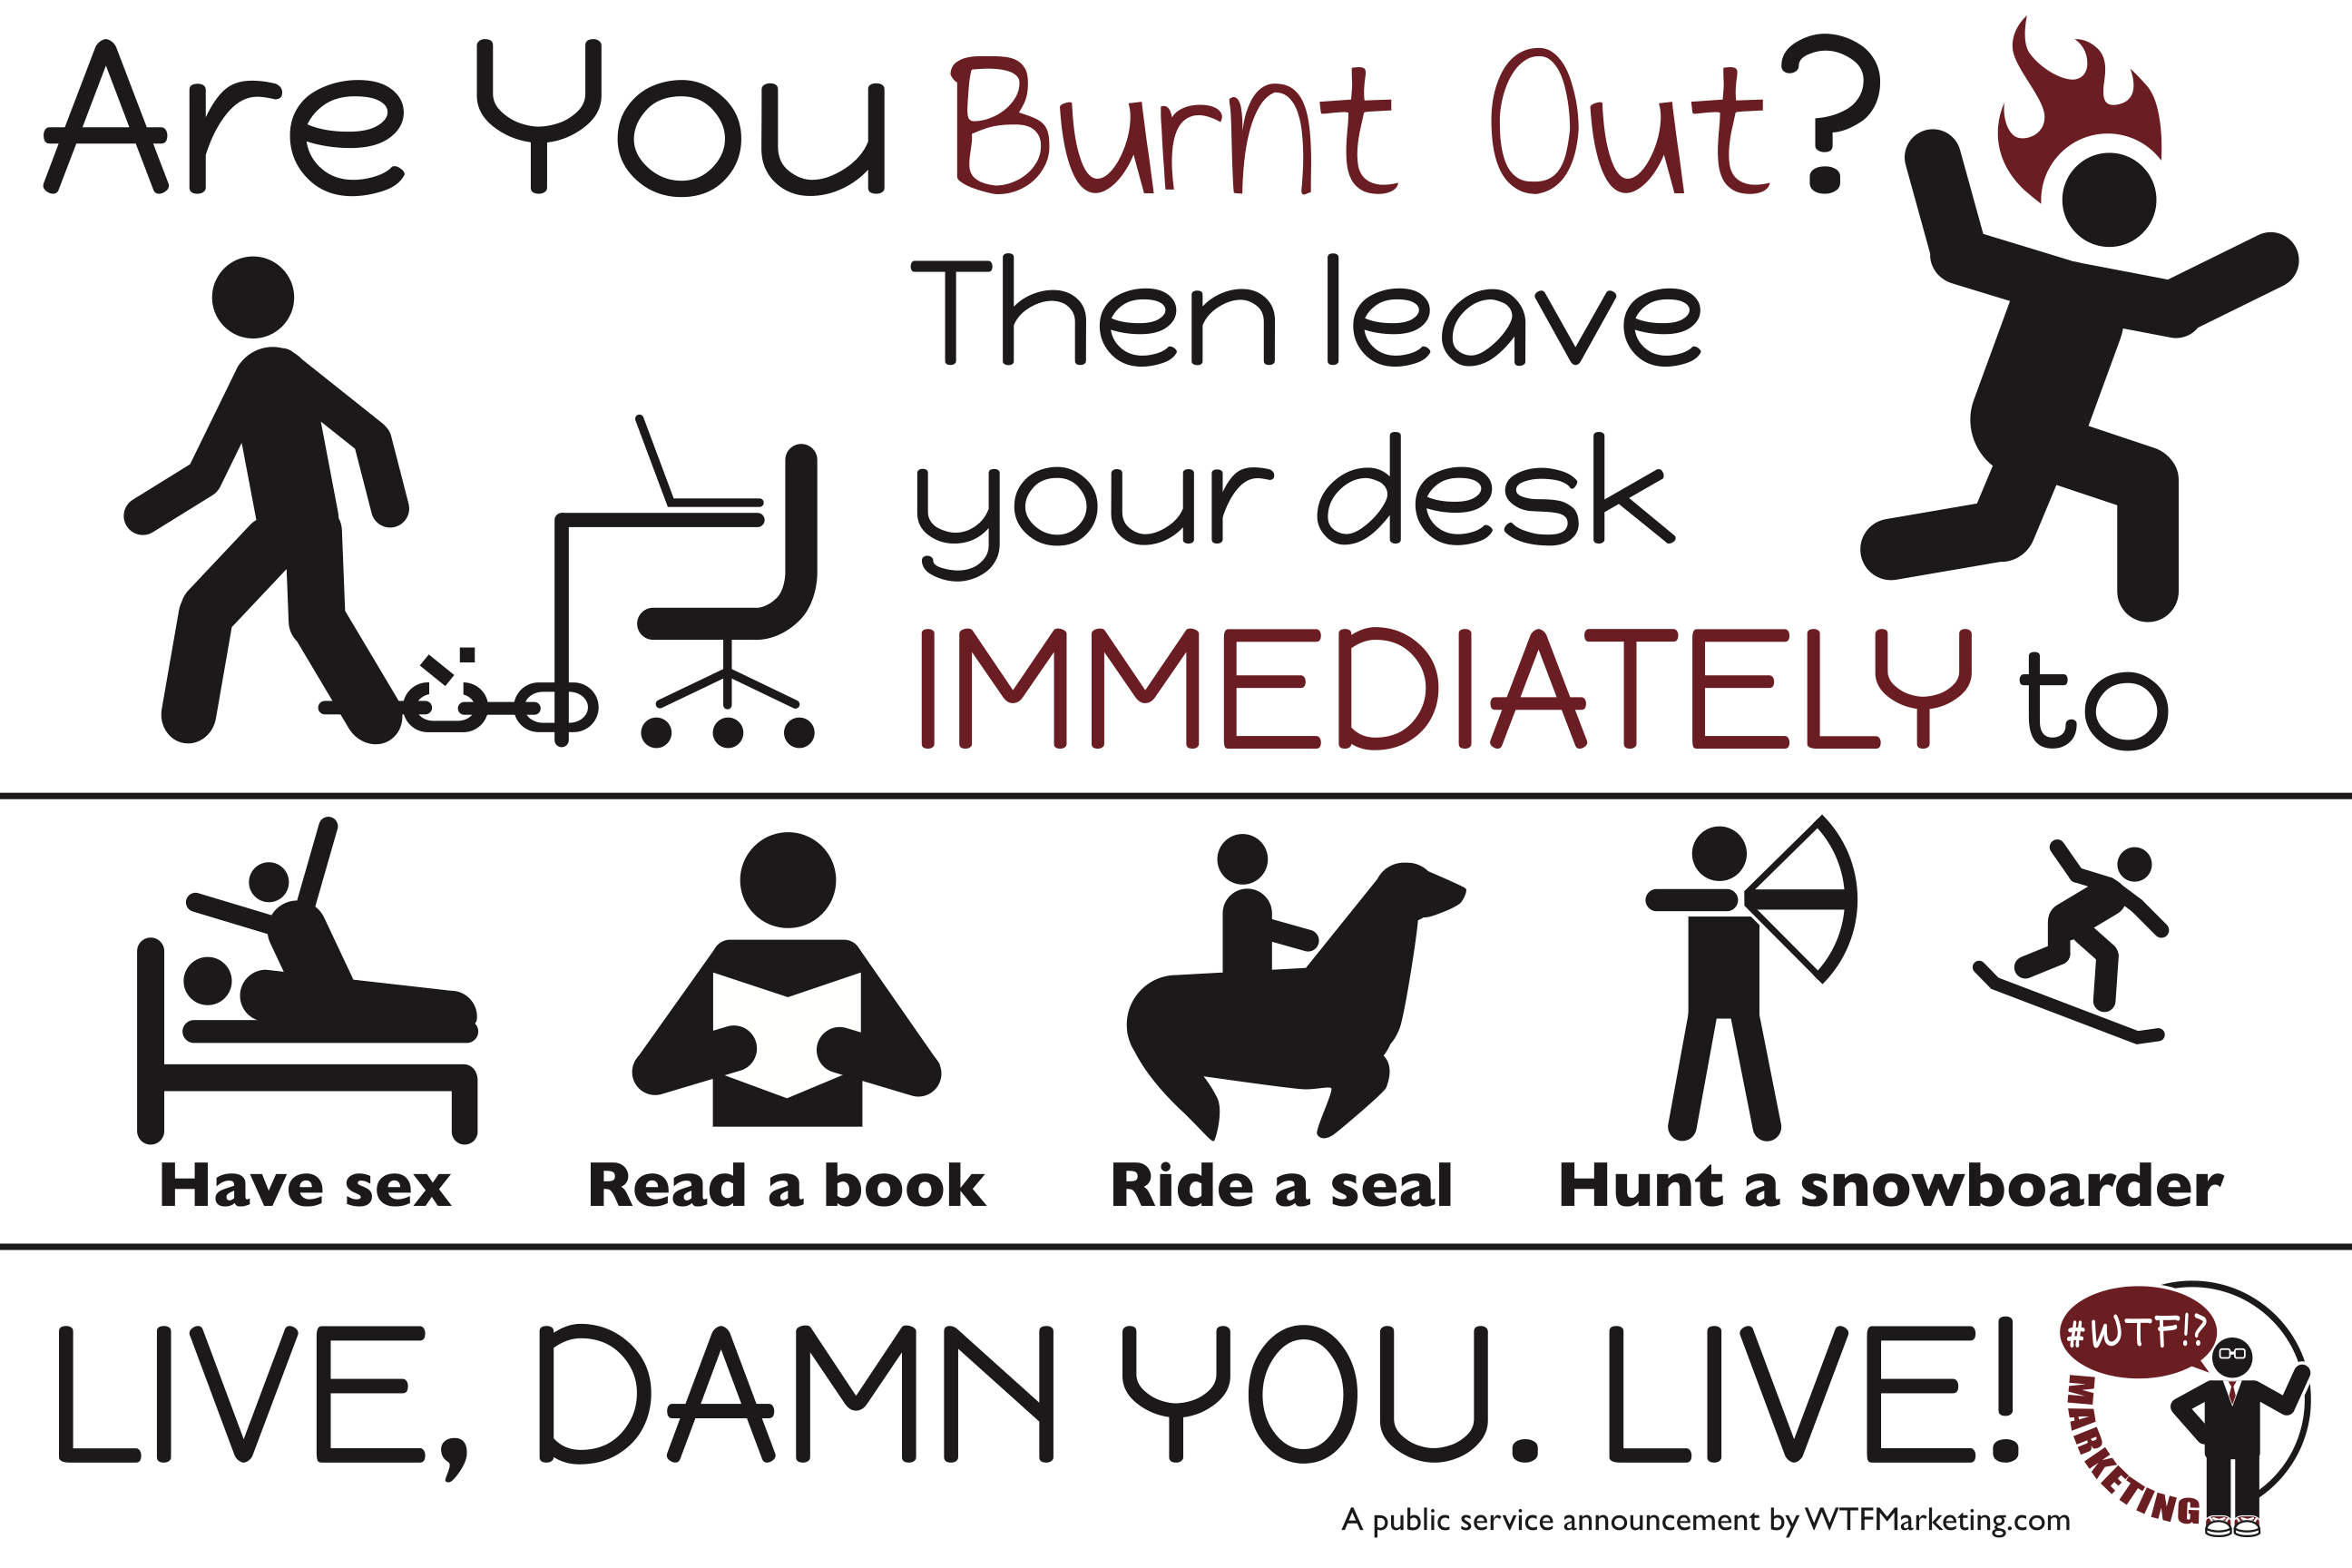 For Our Burnt-Out Friends